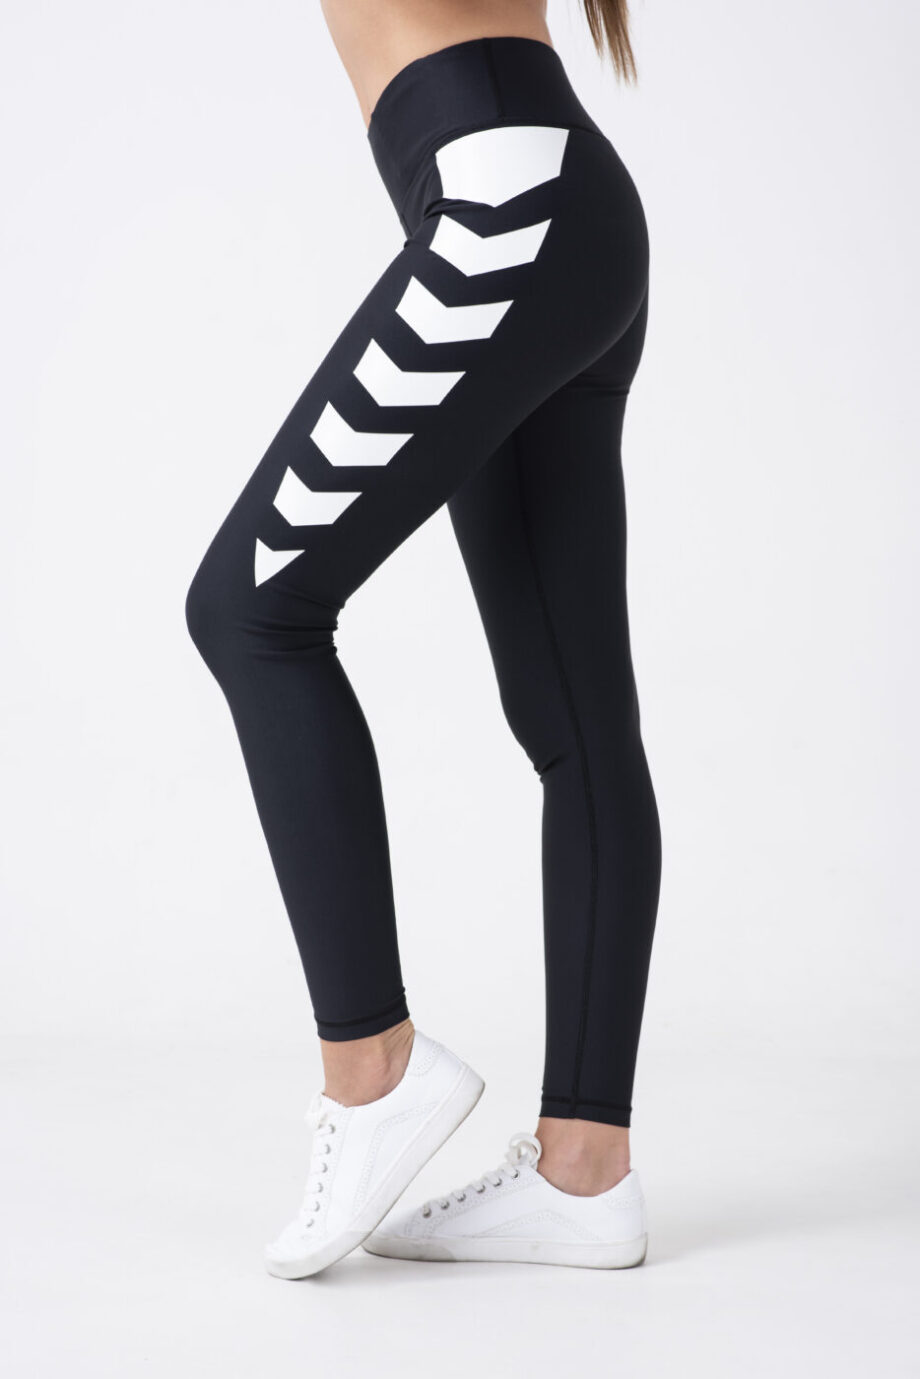 woman in fitness leggings